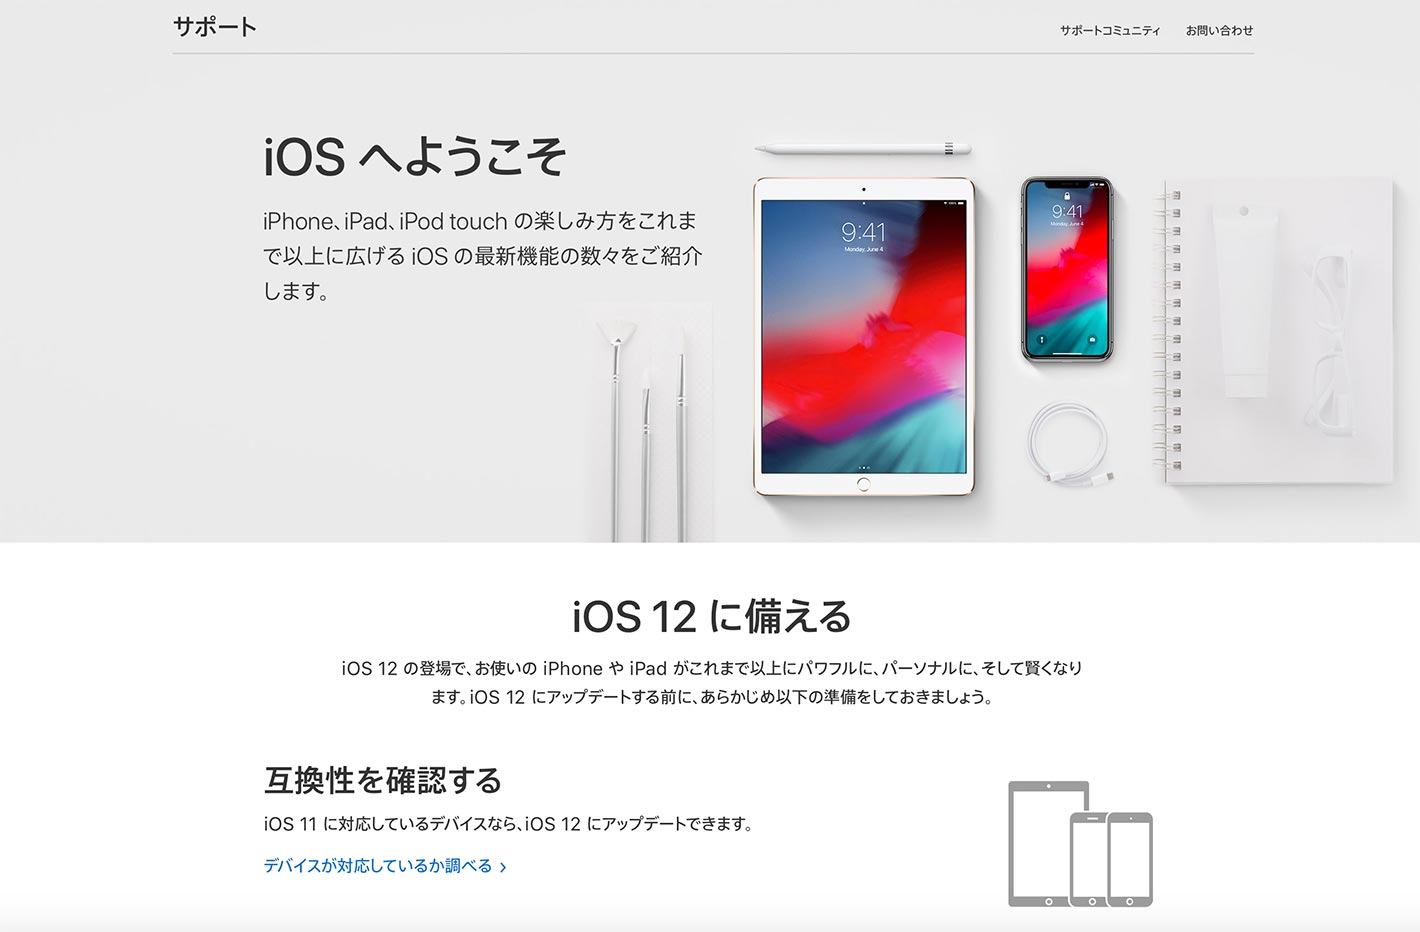 Ios12nisonaeru